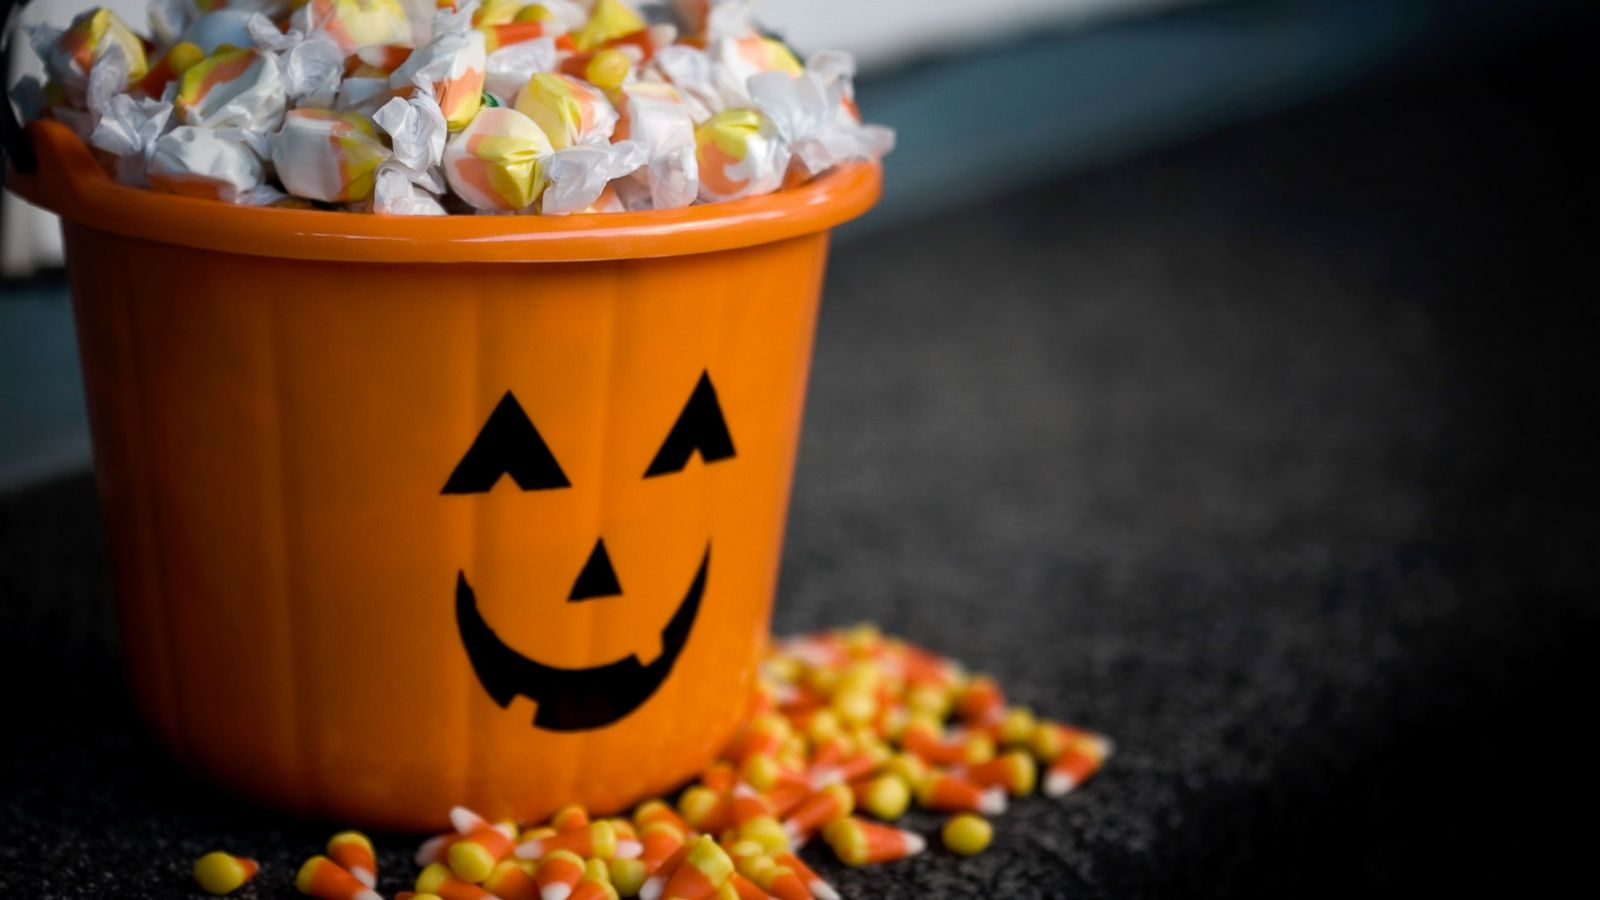 science says this much halloween candy could kill you - abc news